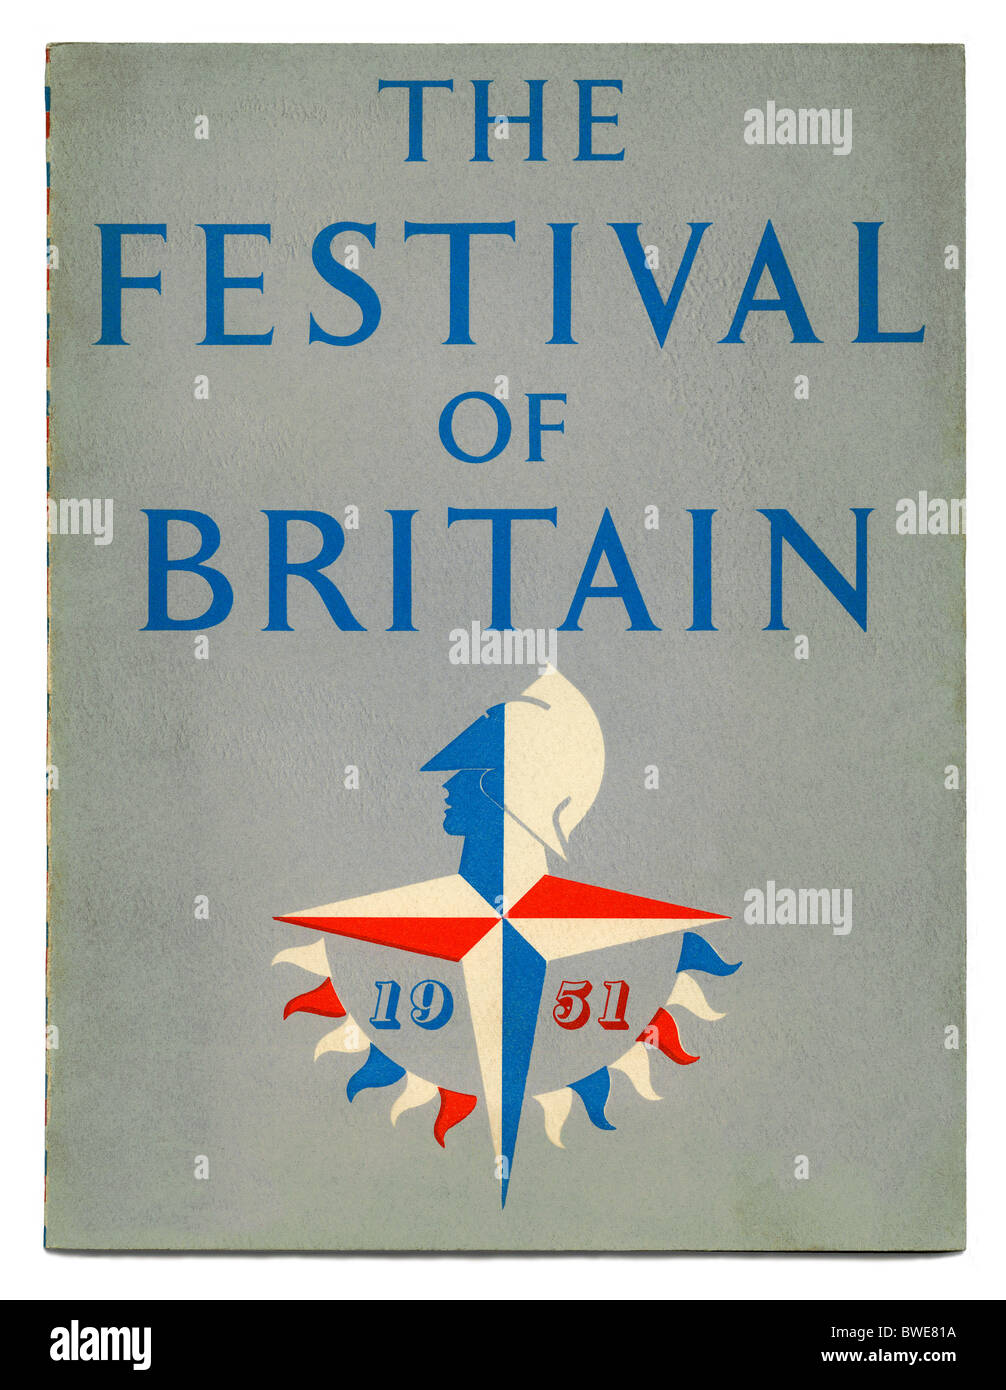 Cover of the official guide book for the 1951 Festival of Britain - Stock Image